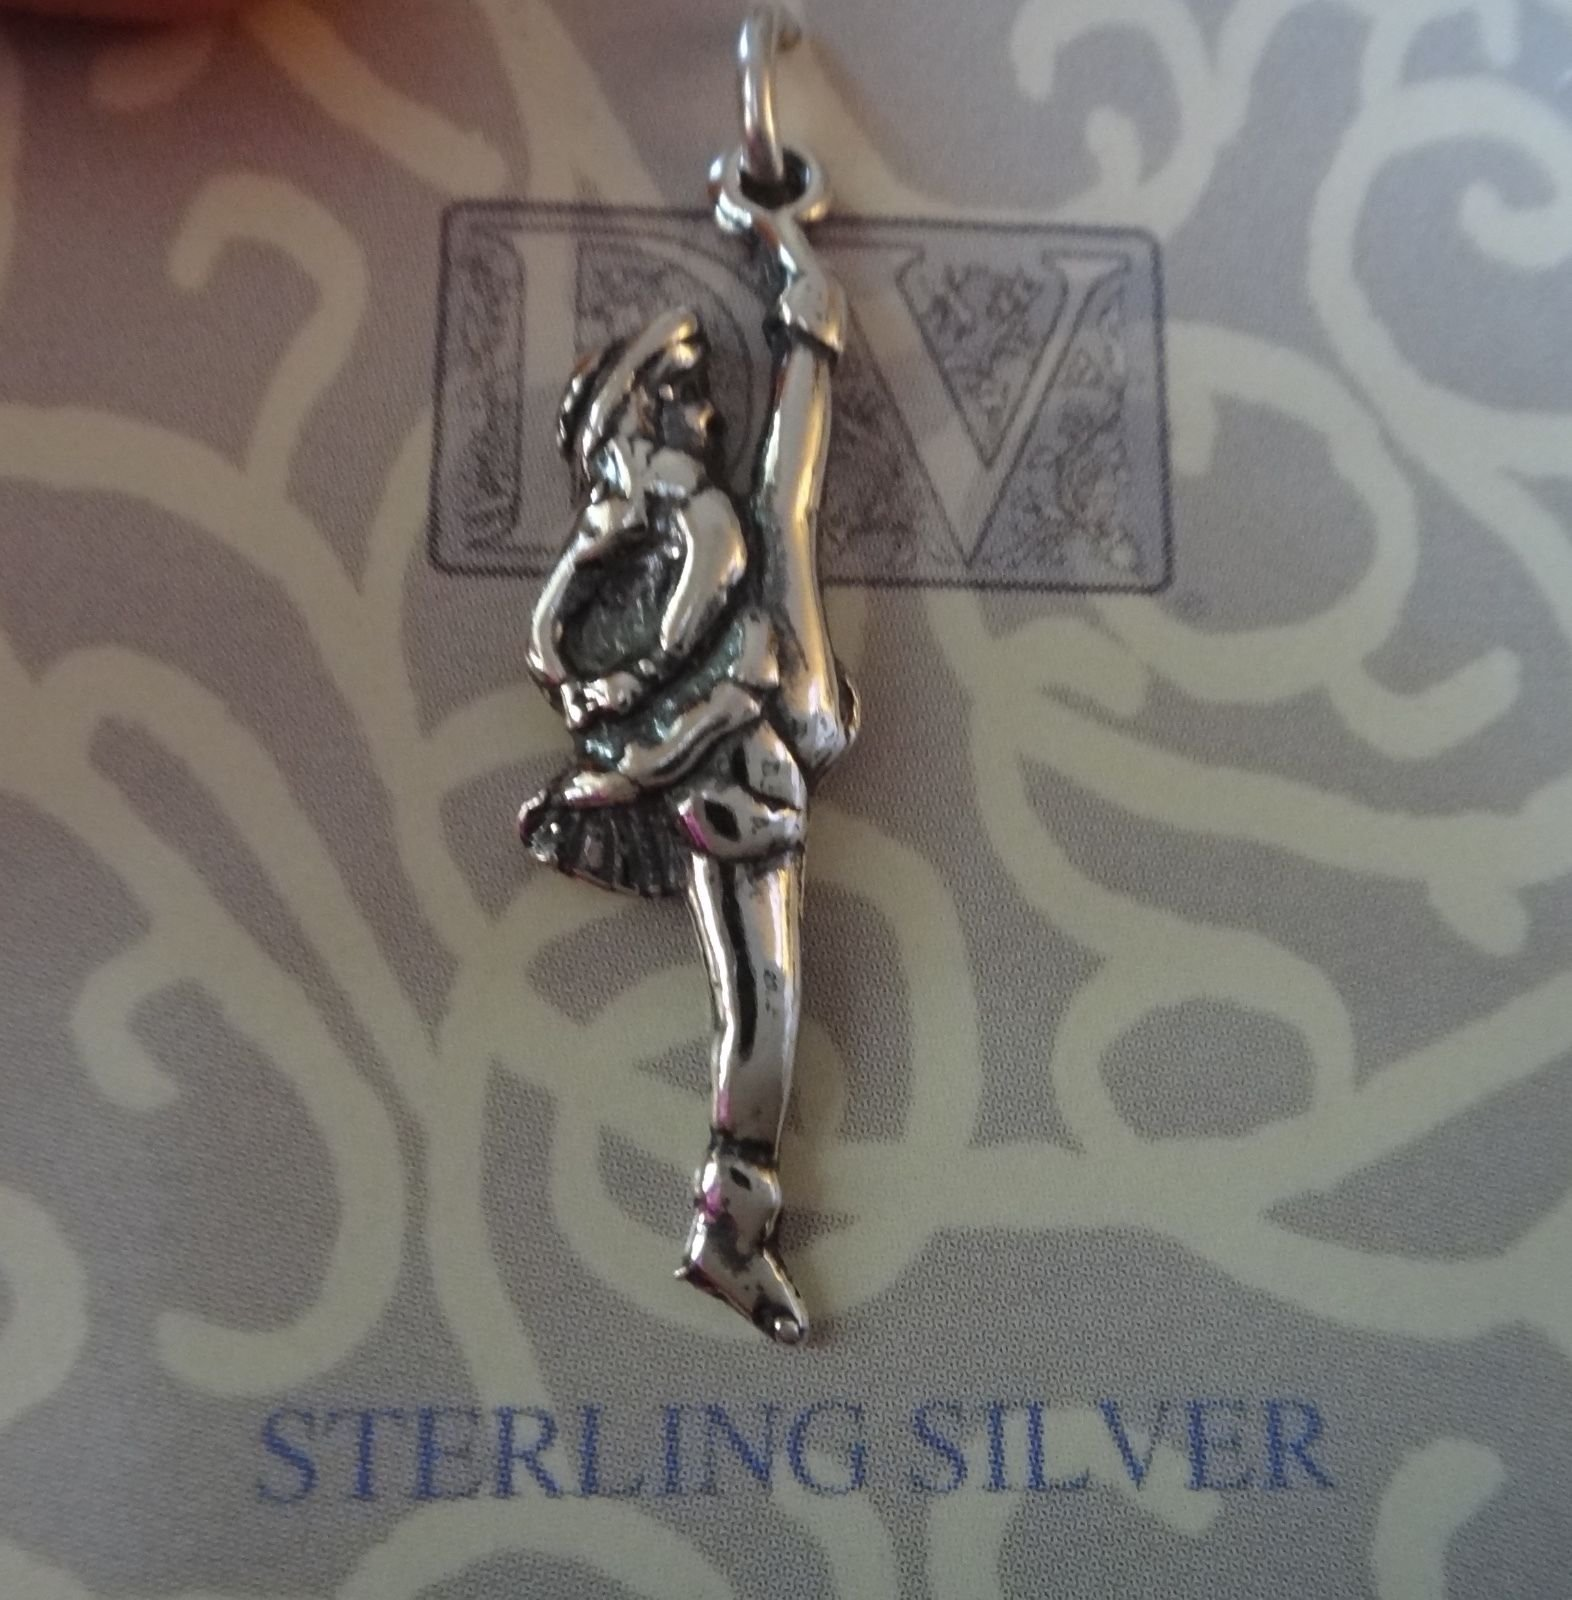 Sterling Silver 30x8mm Dance Drill Team High Kicker Charm Jewelry Making Supply, Pendant, Charms, Bracelet, DIY Crafting by Wholesale Charms